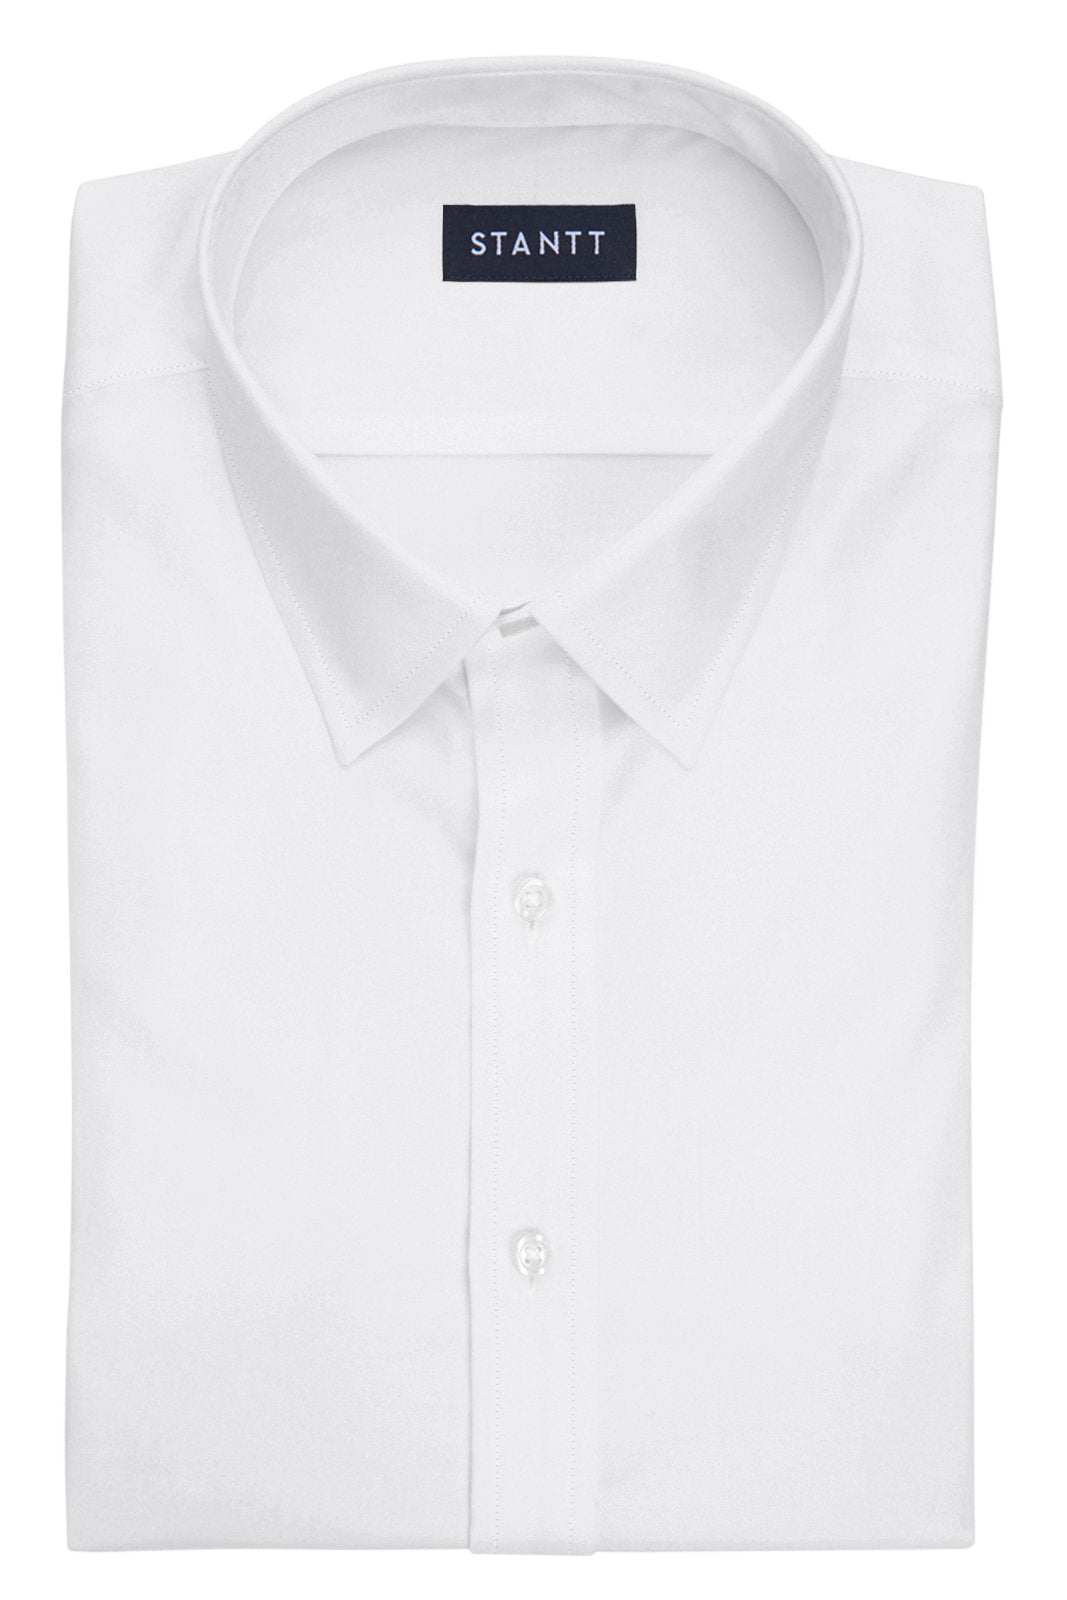 White Pinpoint Oxford: Semi-Spread Collar, Barrel Cuff